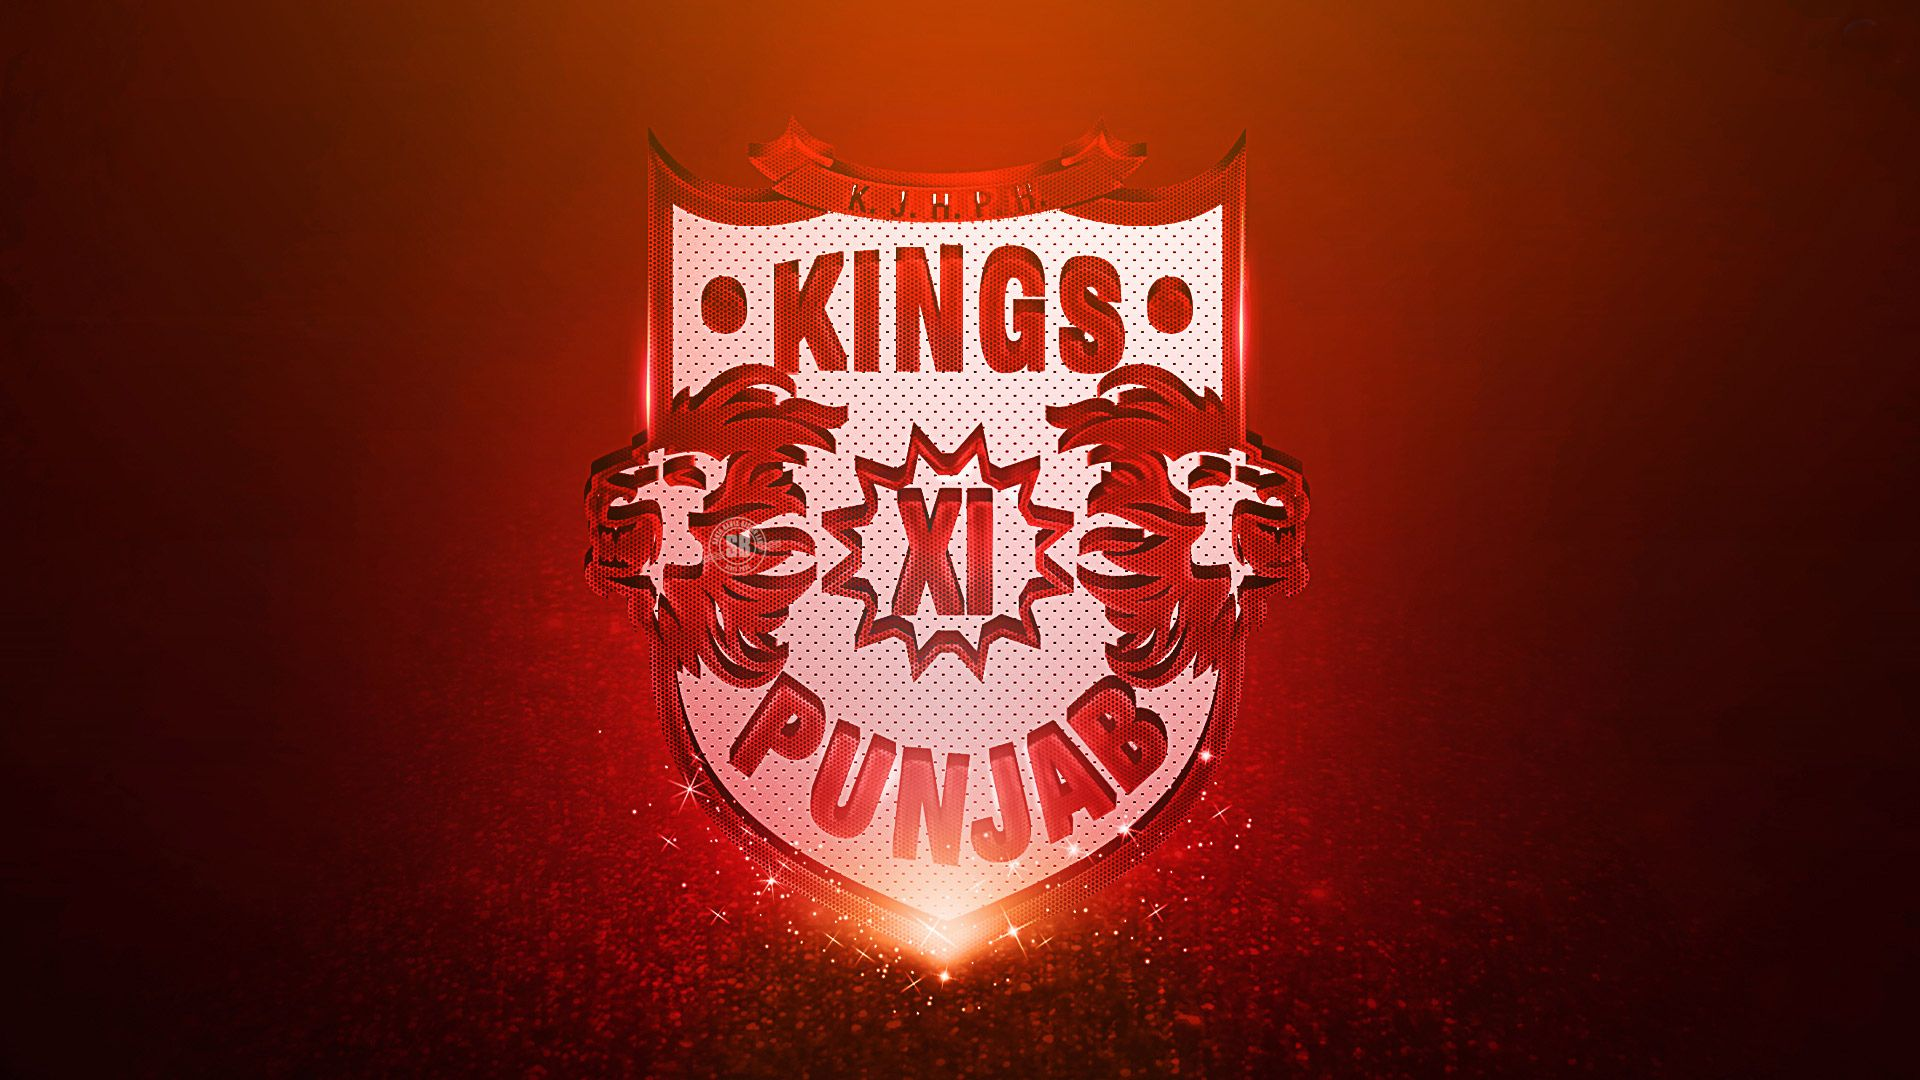 IPL 2019 Background and Text Png Royal challengers